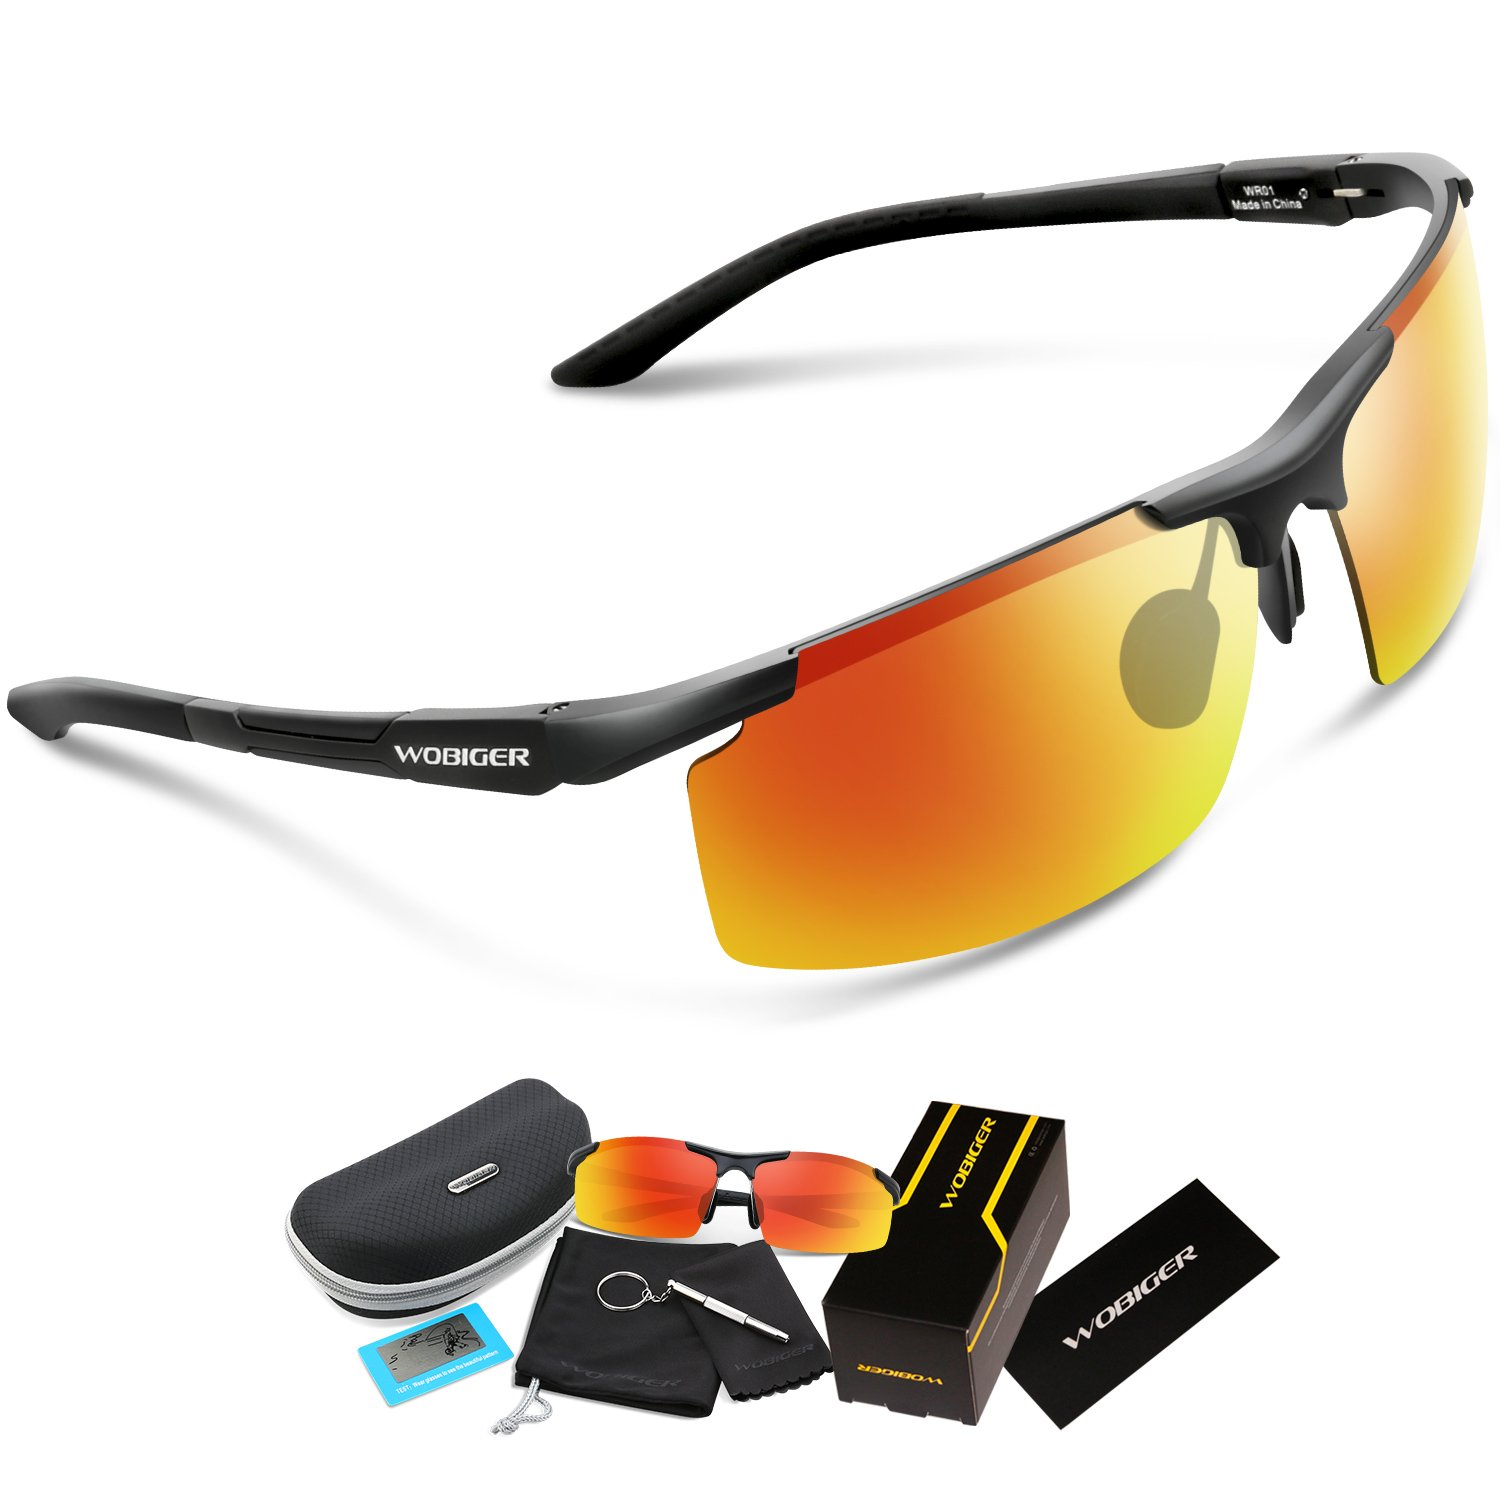 f72a7e3d7c9 Amazon.com   WOOLIKE Men s Sports Style Polarized Sunglasses for Cycling  Running Fishing Driving Golf Unbreakable Al-Mg Frame Metal Glasses  (Black Red Lens) ...